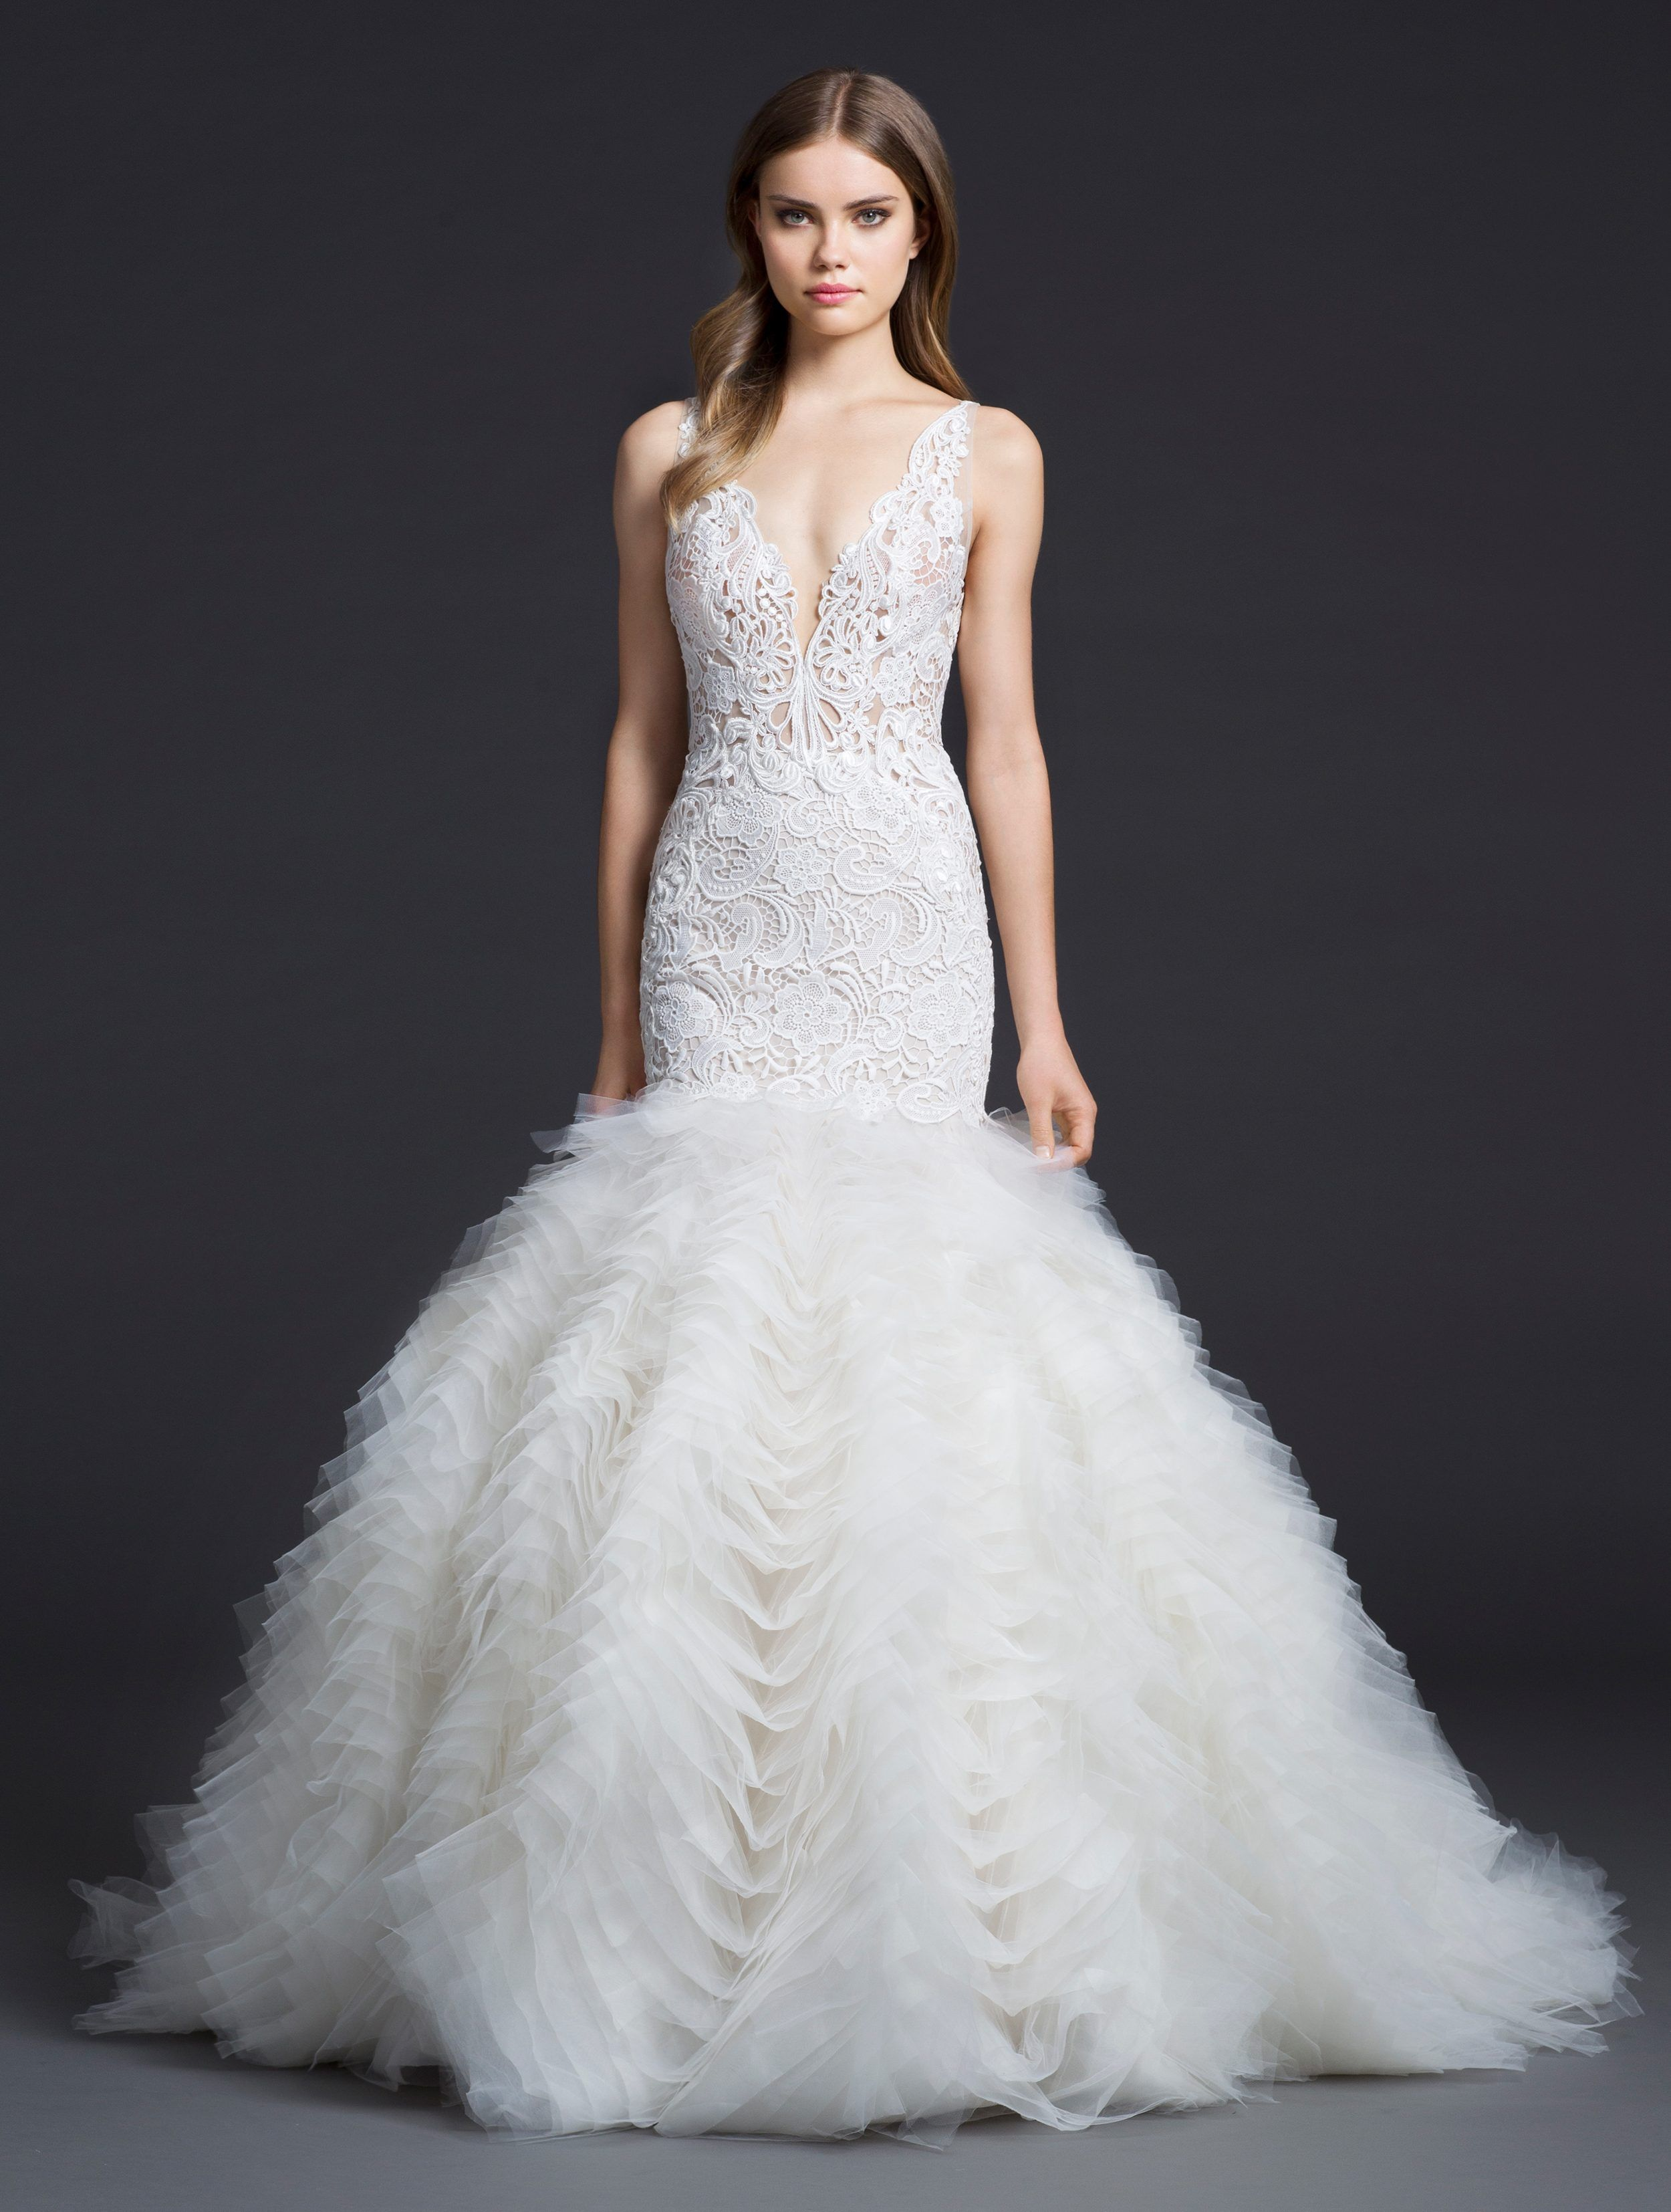 Bridal gowns and wedding dresses by jlm couture style 3650 bridal gowns and wedding dresses by jlm couture style 3650 junglespirit Gallery